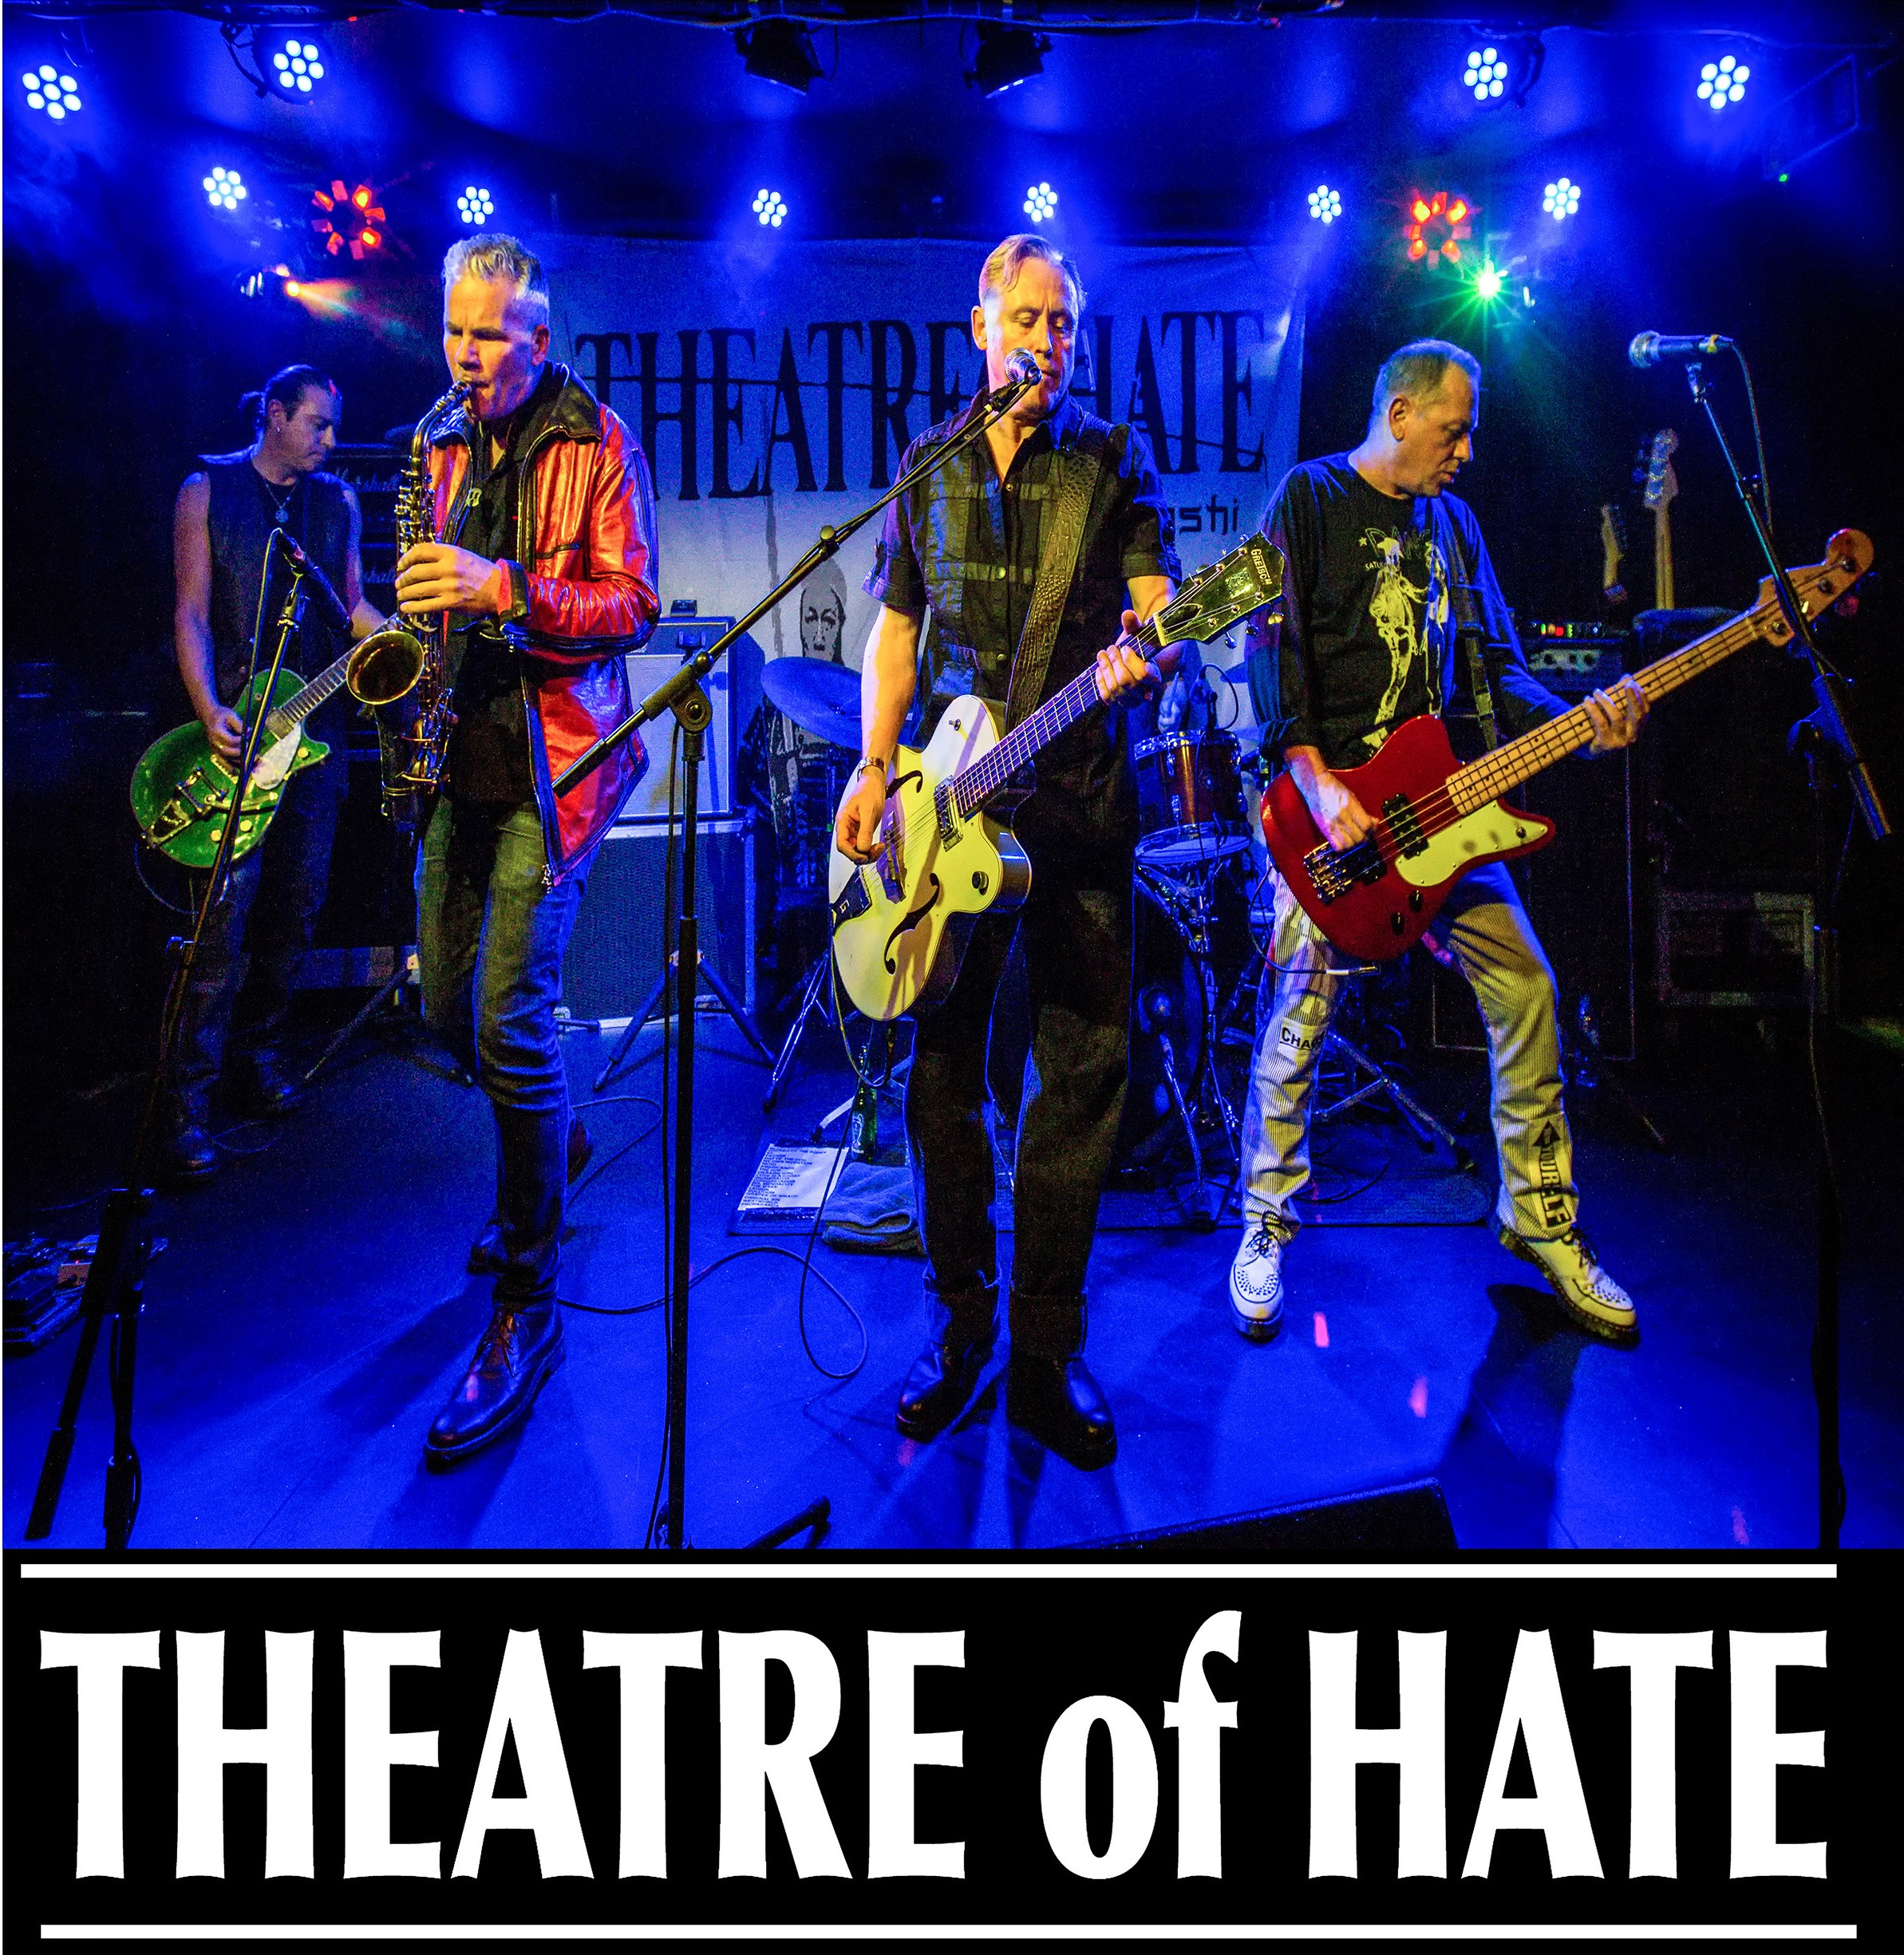 Theatre of Hate